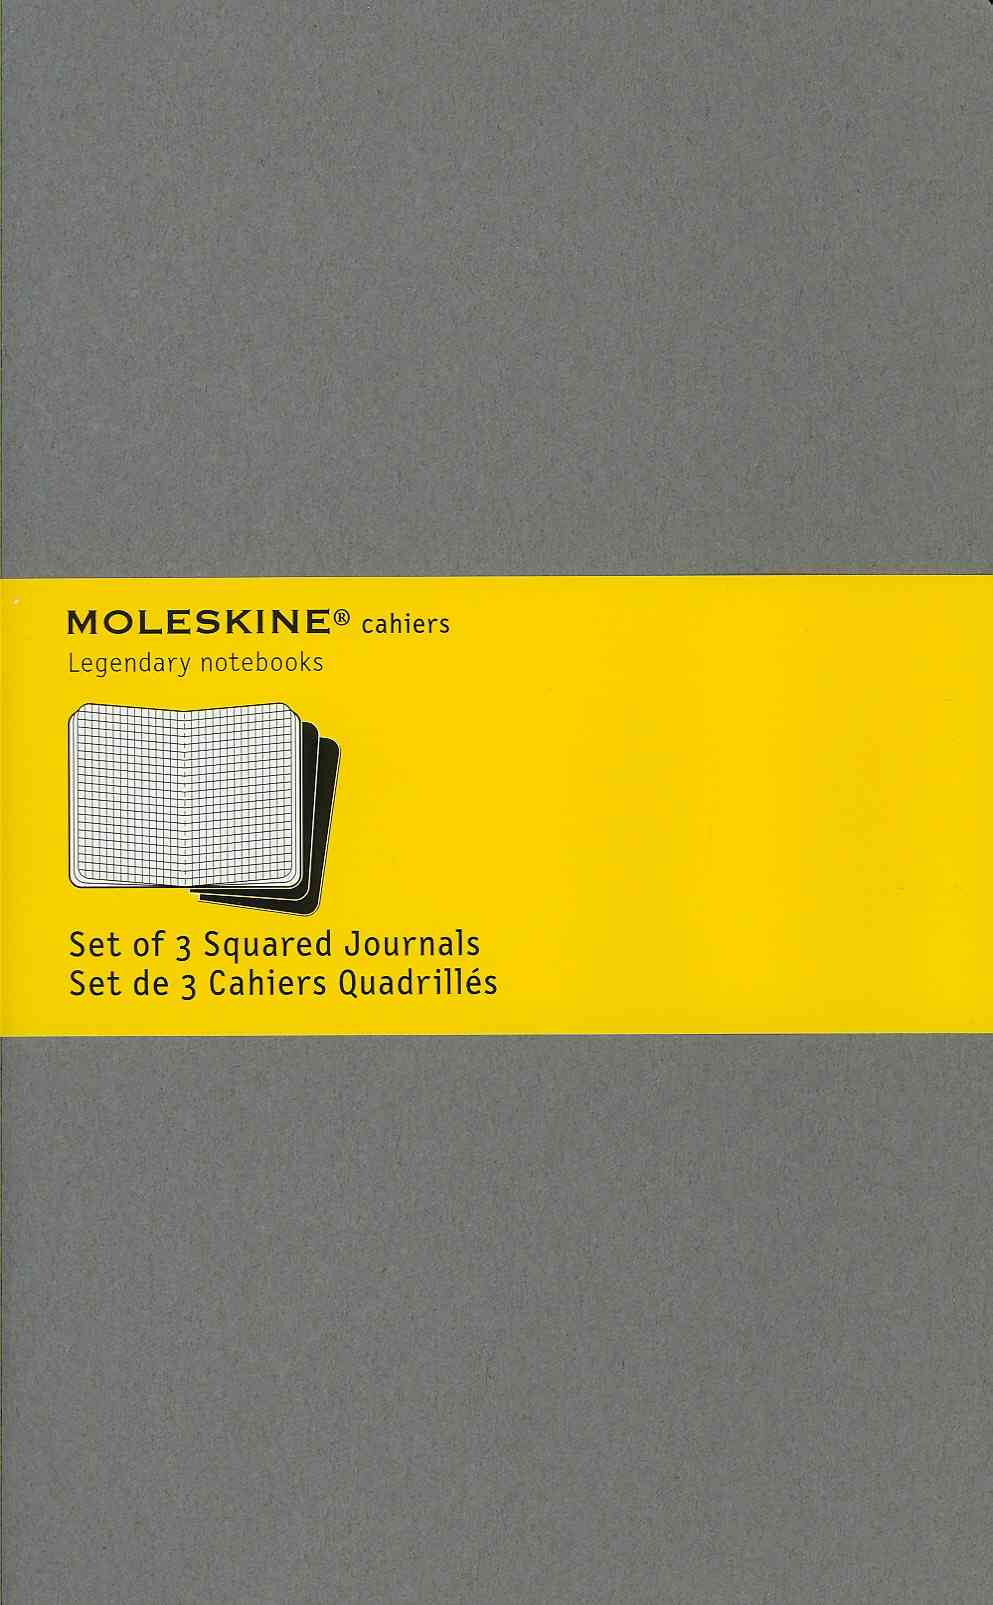 Moleskine Cahier Light Warm Grey, Large: Set of 3 Squared Journals / Set De 3 Cahiers Quadrilles (Notebook / blank book)